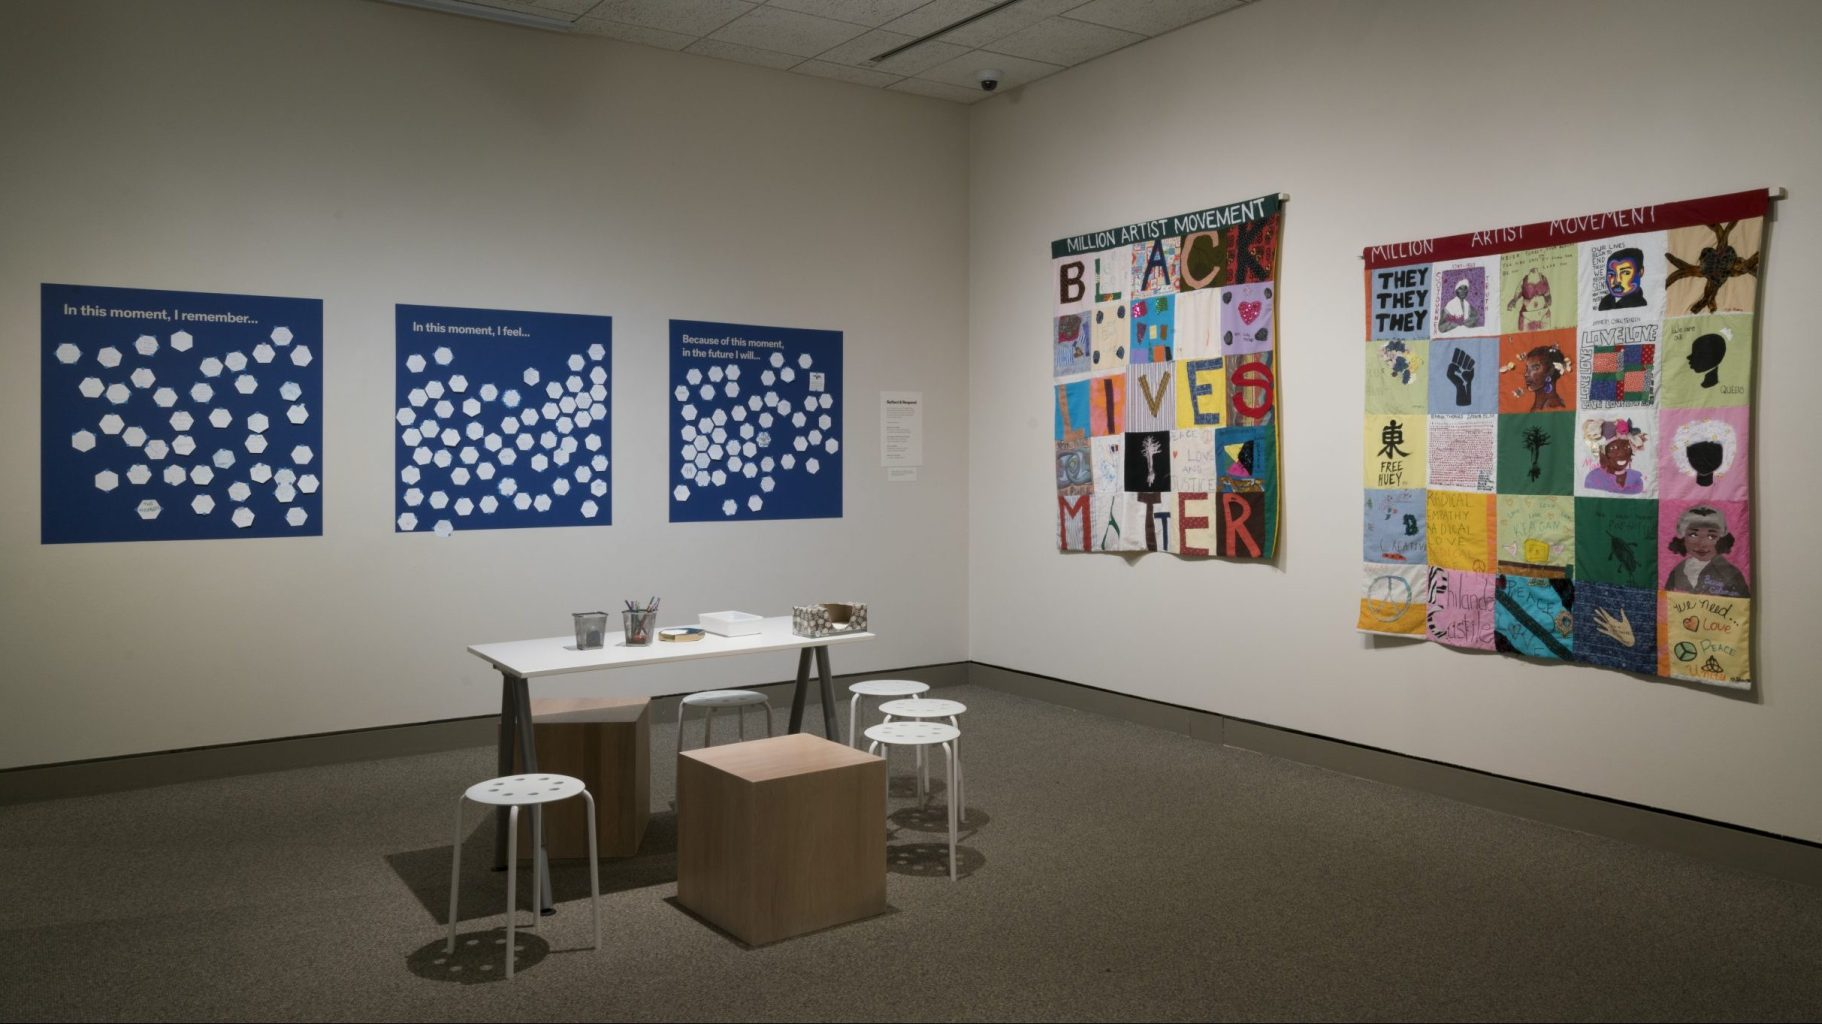 """A museum gallery space with Black-Lives-Matter-themed art and a workstation for answering questions on poster boards: """"In this moment, I remember...,"""" """"In this moment, I feel...,"""" and """"Because of this moment, in the future I will..."""""""